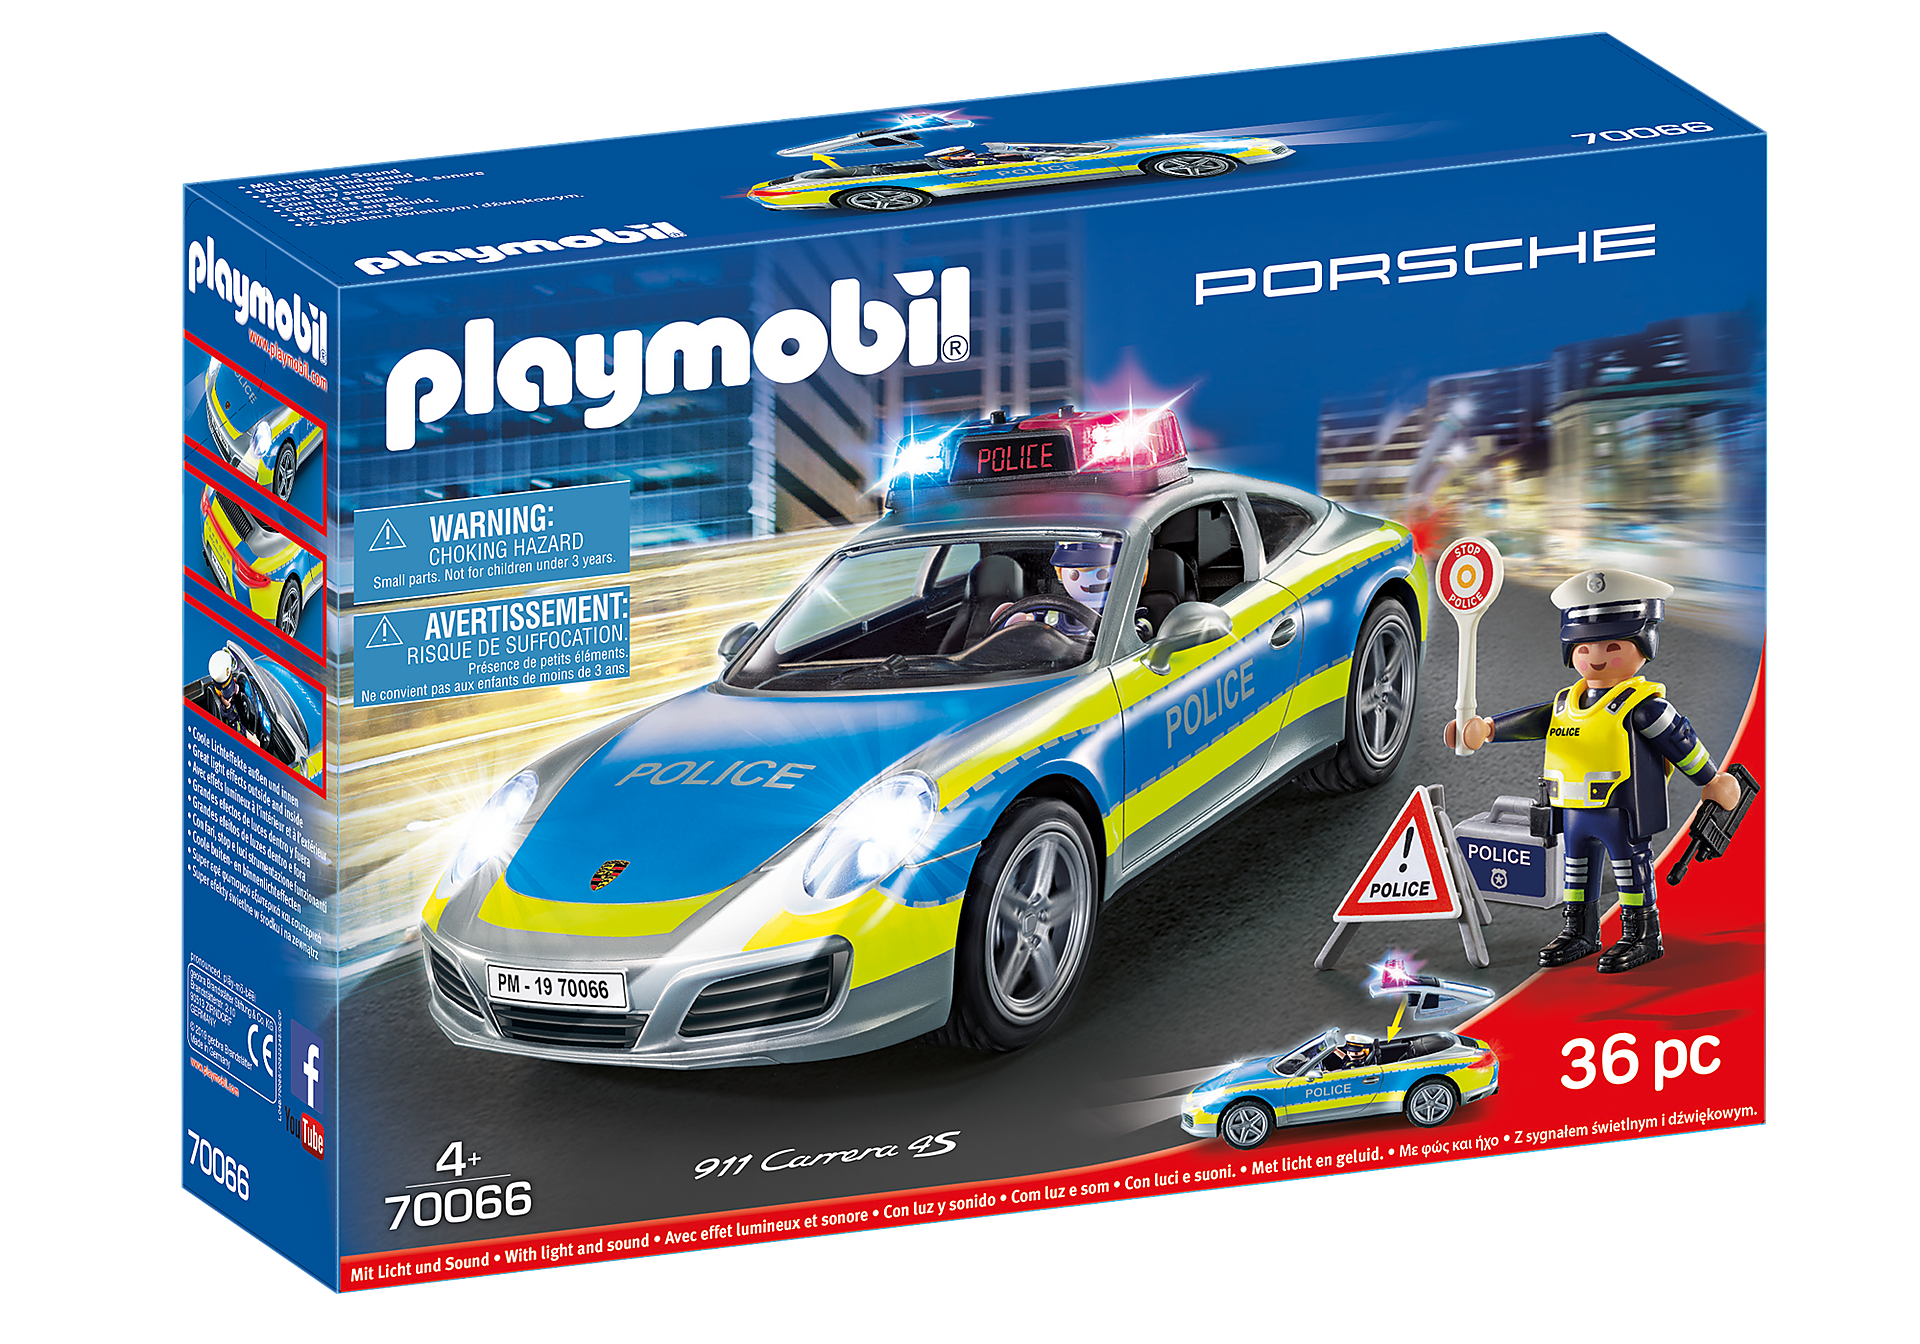 http://media.playmobil.com/i/playmobil/70066_product_box_front/Porsche 911 Carrera 4S Police